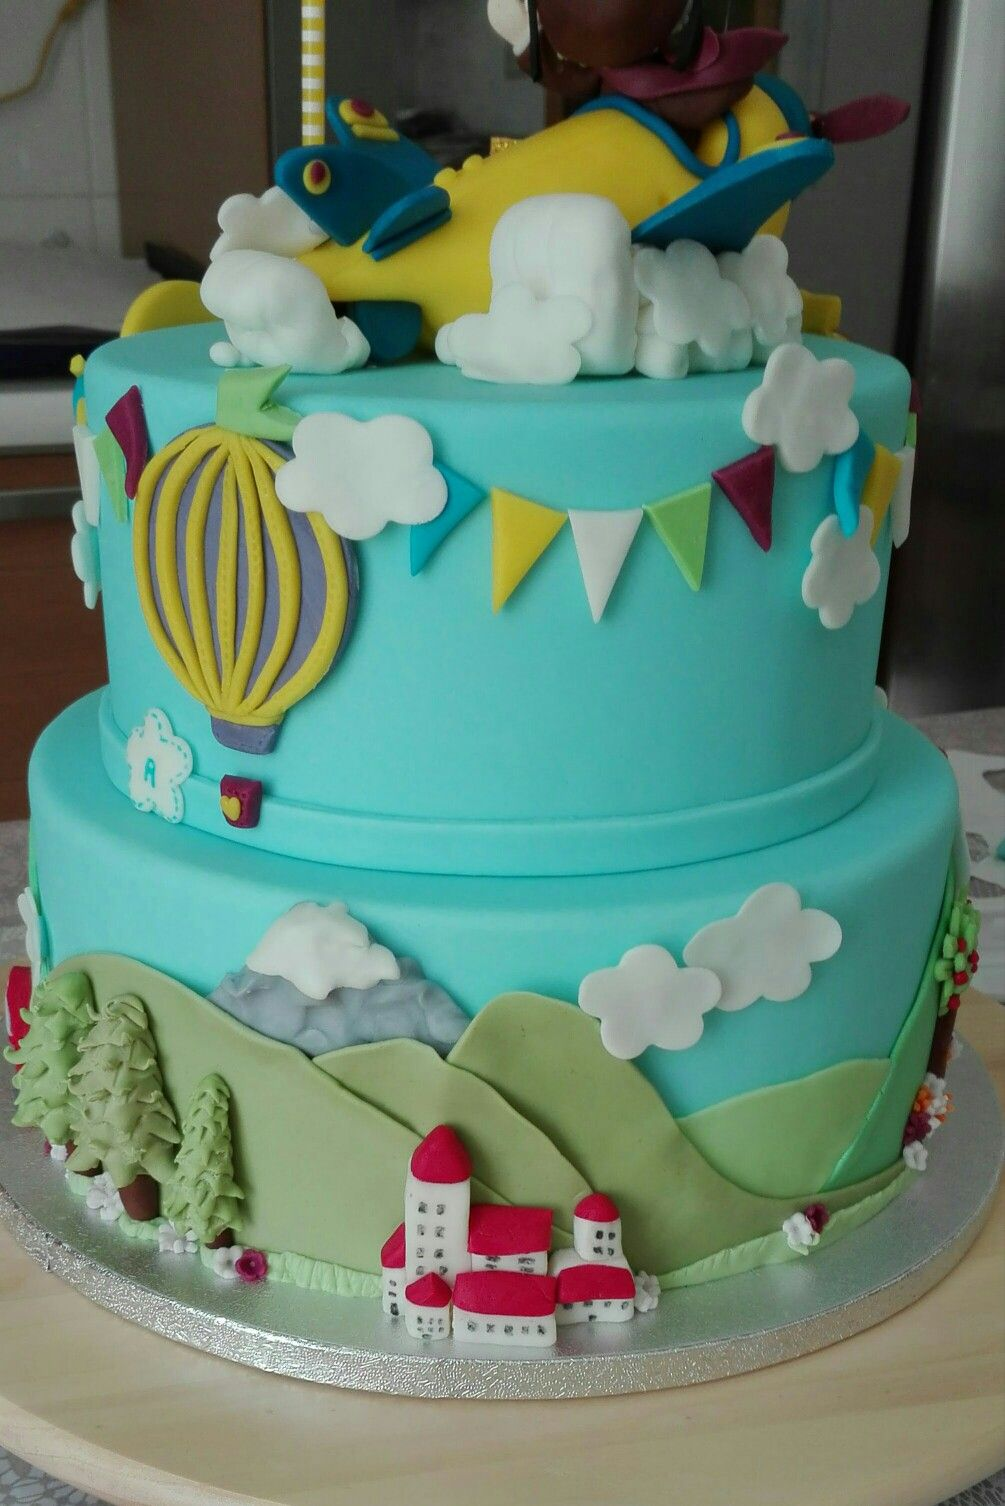 Pin by Maria Tsartsidou on birthday cake in 2020 (With